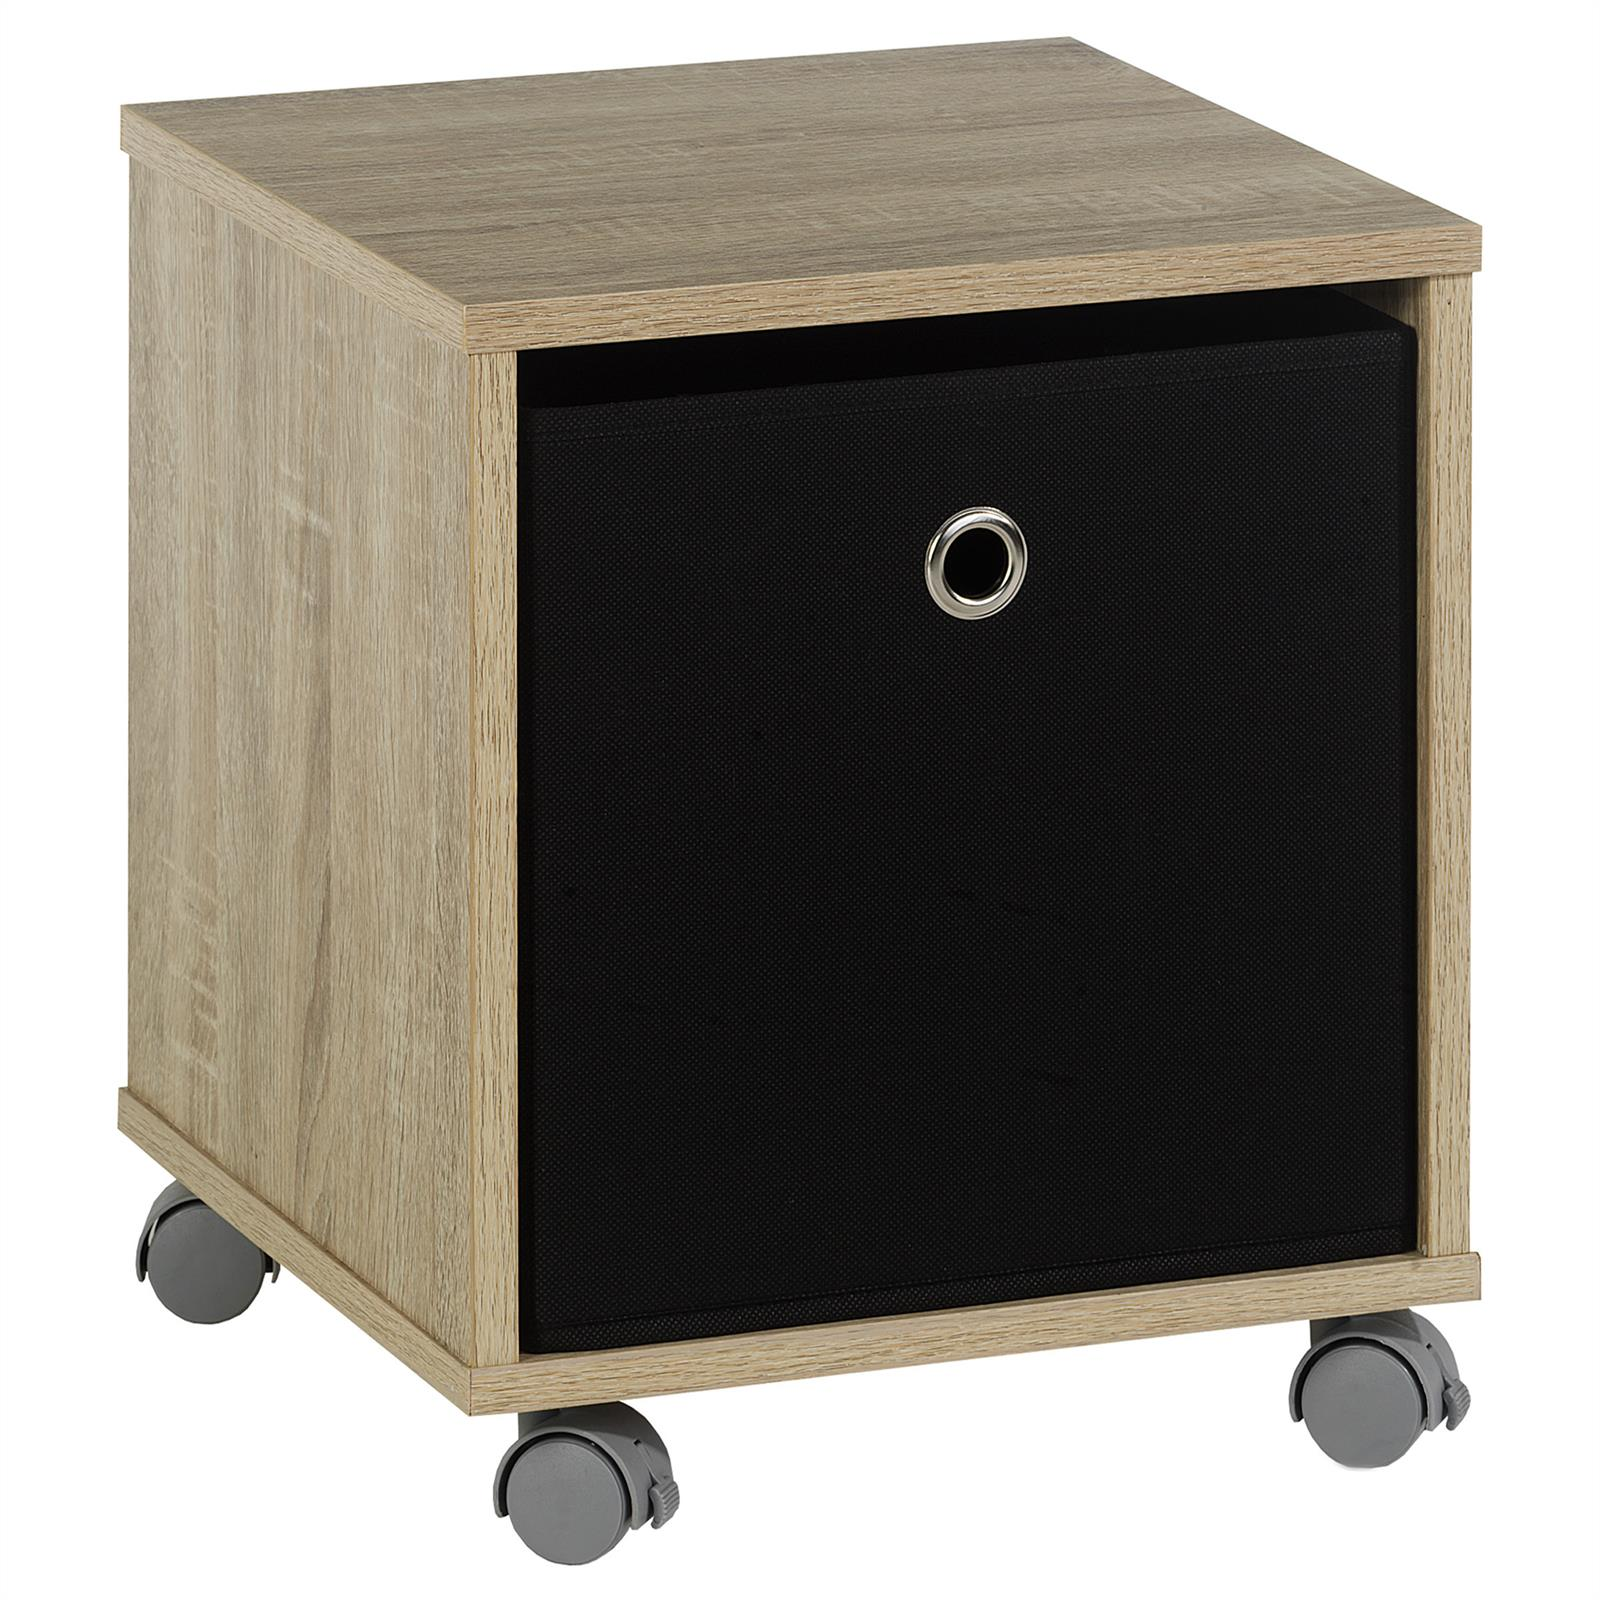 nachttisch kommode schrank rollcontainer m bel mit stoffbox auf rollen ebay. Black Bedroom Furniture Sets. Home Design Ideas